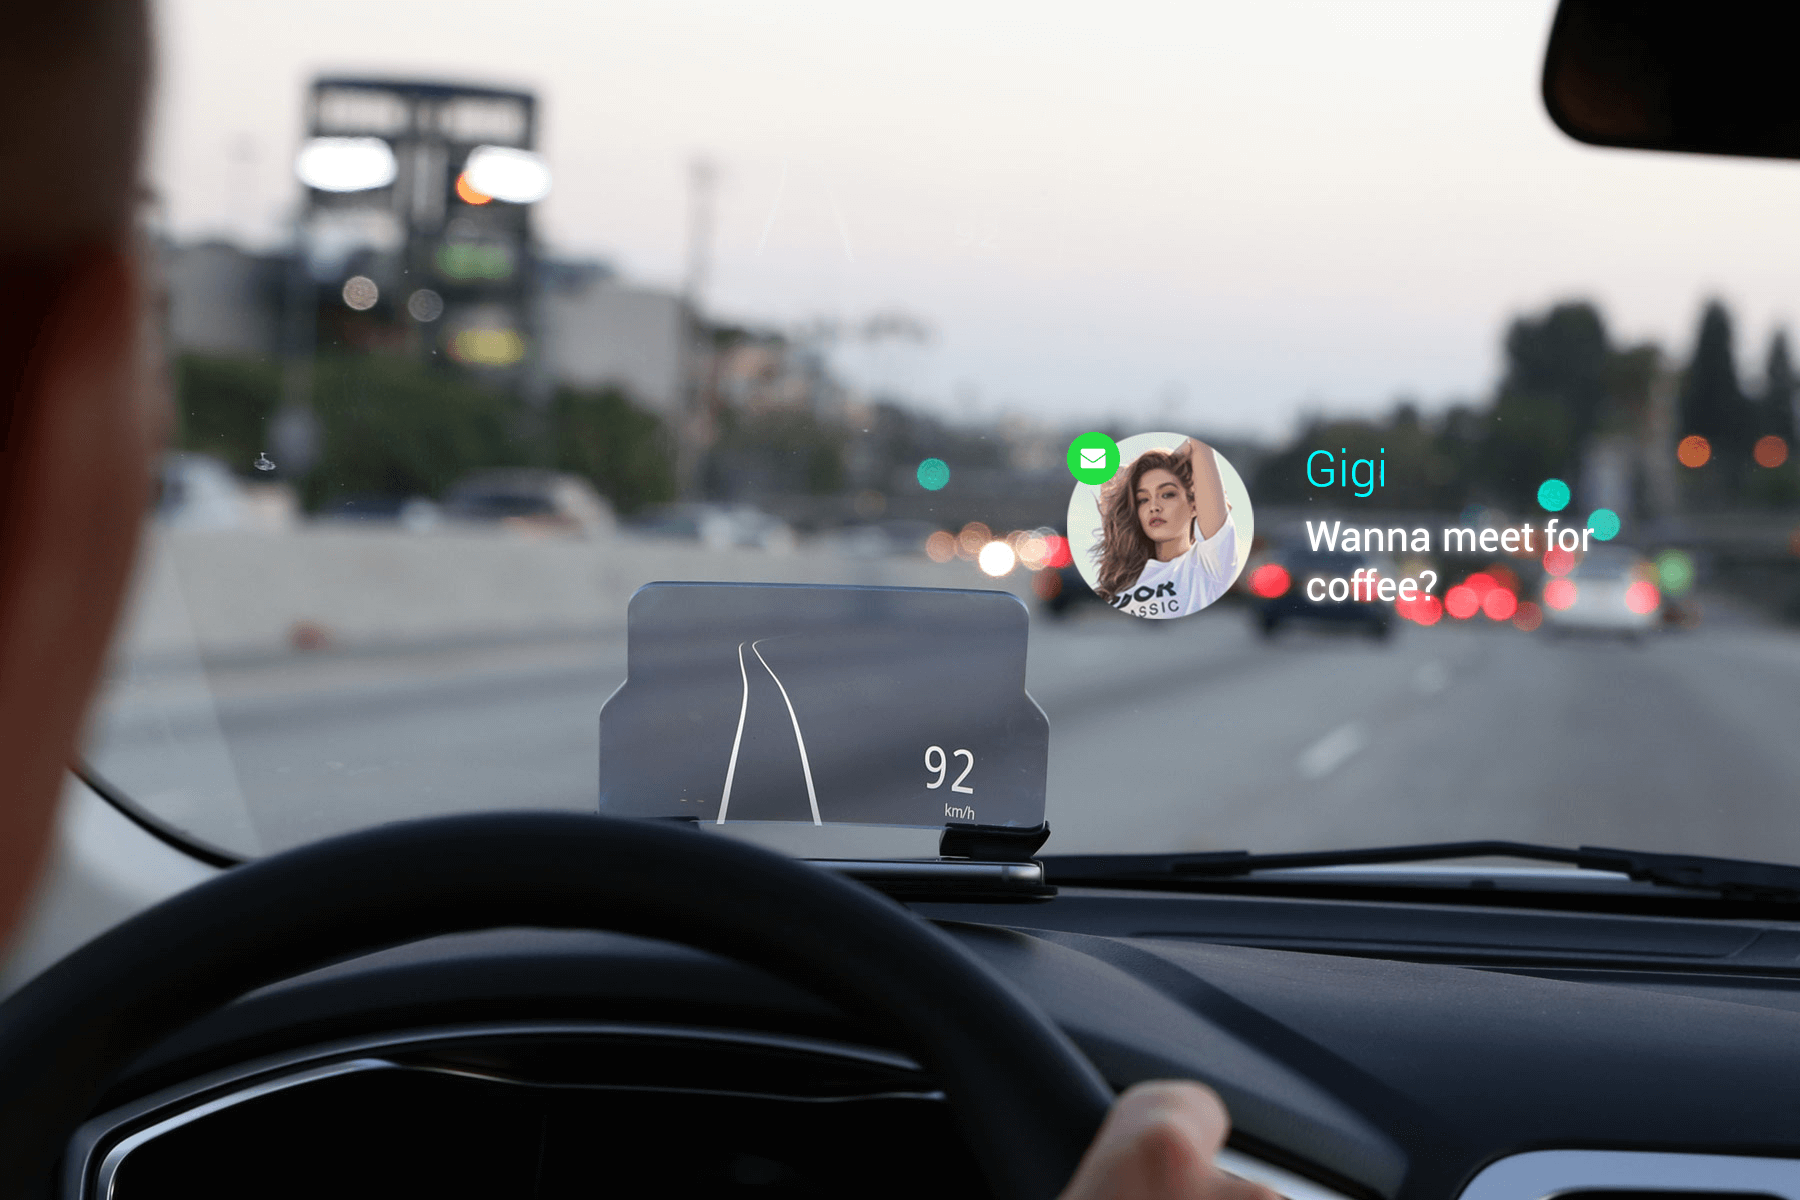 VR/AR IN AUTOMOTIVE INDUSTRY: MANUFACTURE, BUY, AND DRIVE CARS SMARTER